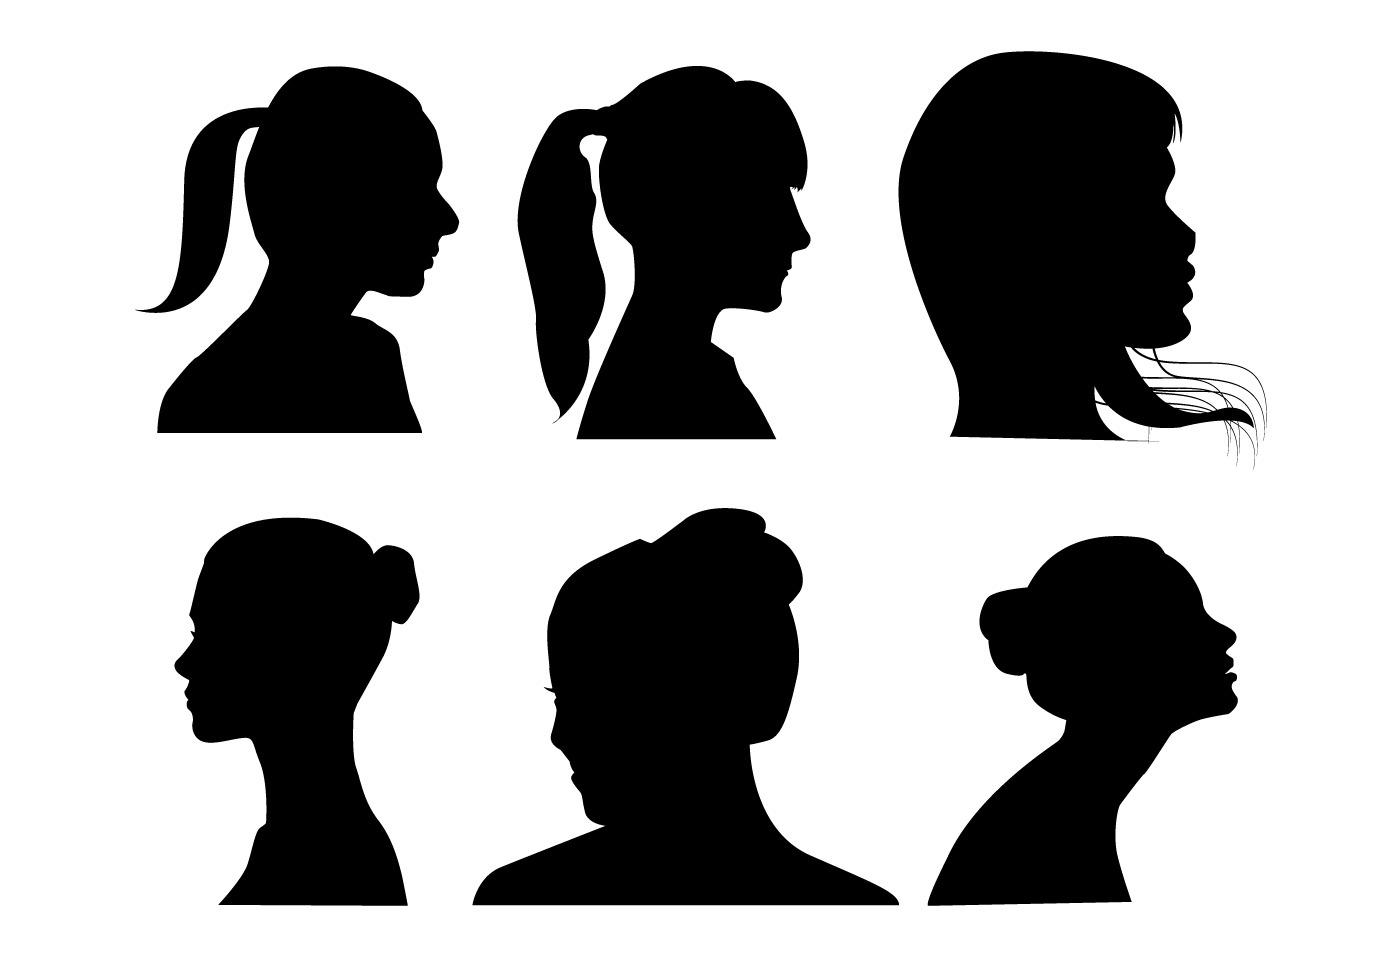 Women Profile Vectors Download Free Vector Art Stock